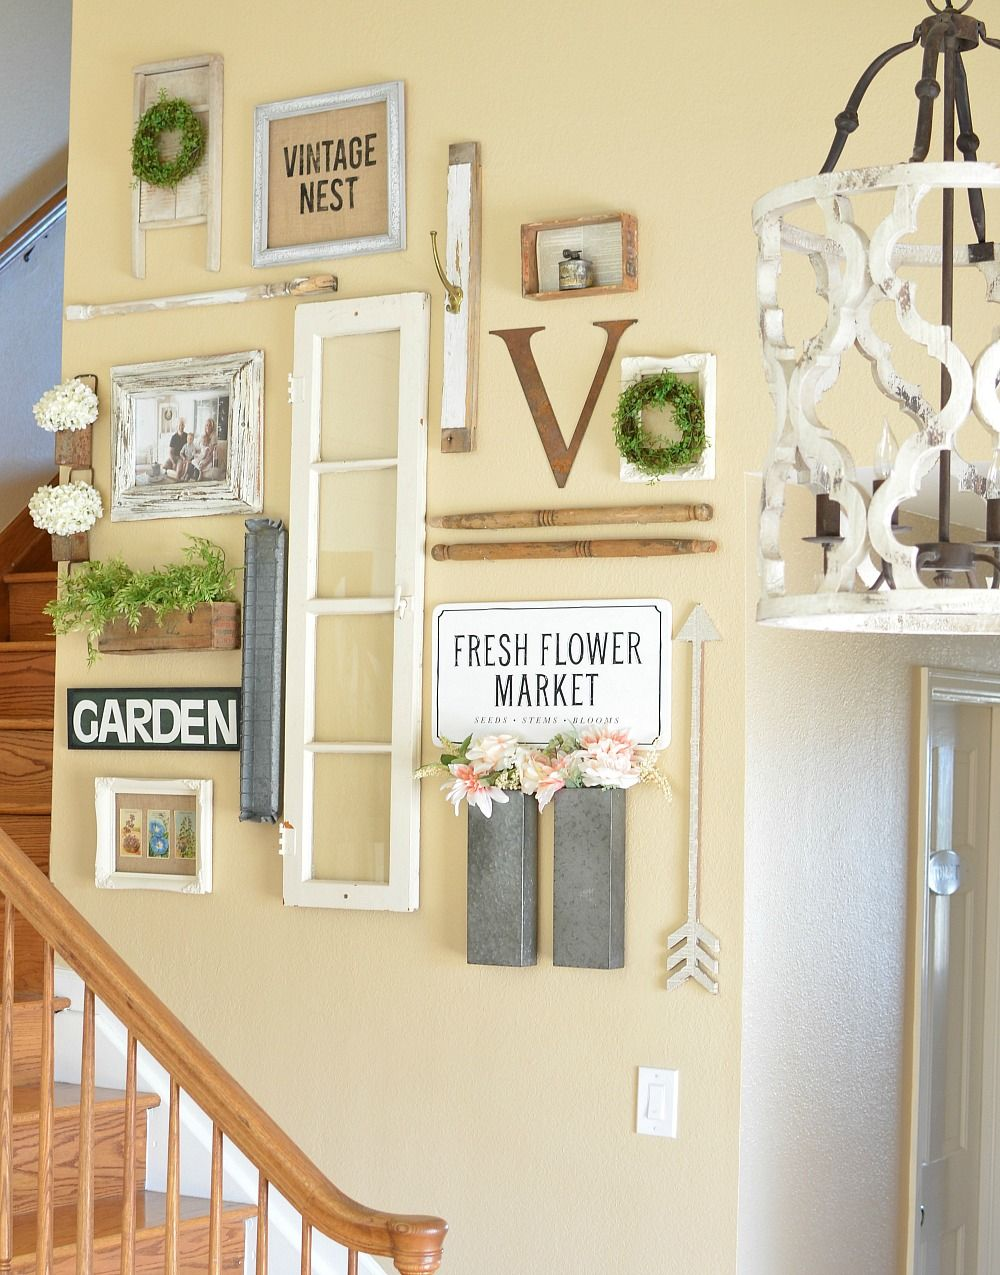 Farmhouse Style Gallery Wall for Spring | decorating ideas ...